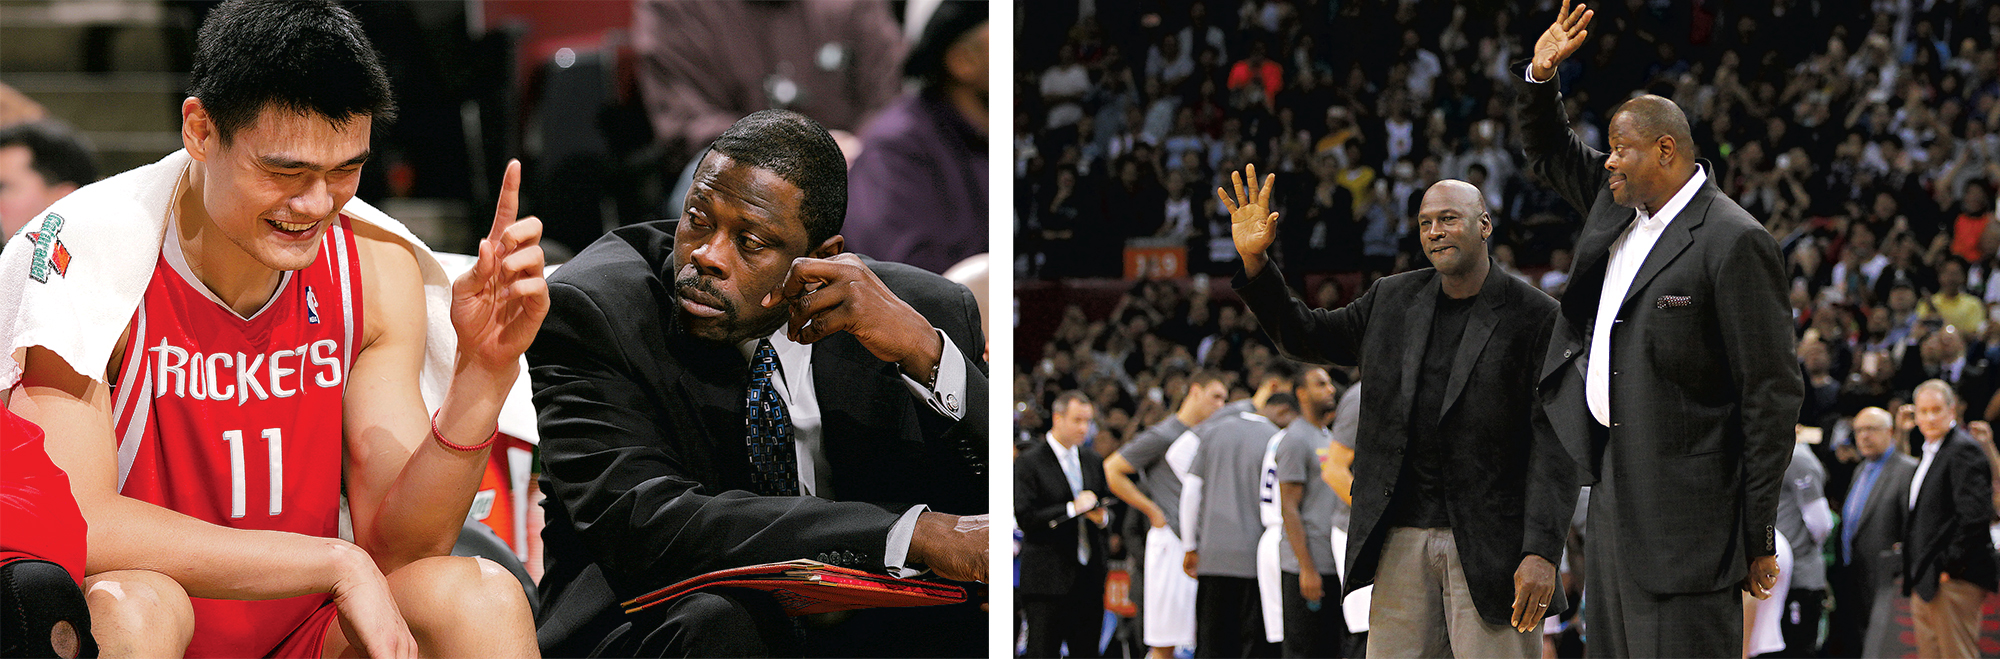 Left, Ewing as an assistant with the Houston Rockets, offering advice to Yao Ming. Photograph by Jonathan Daniel/Getty Images. Right, with Jordan at the 2015 NBA Global Games in China. Photograph by Zhong Zhi/Getty Images.